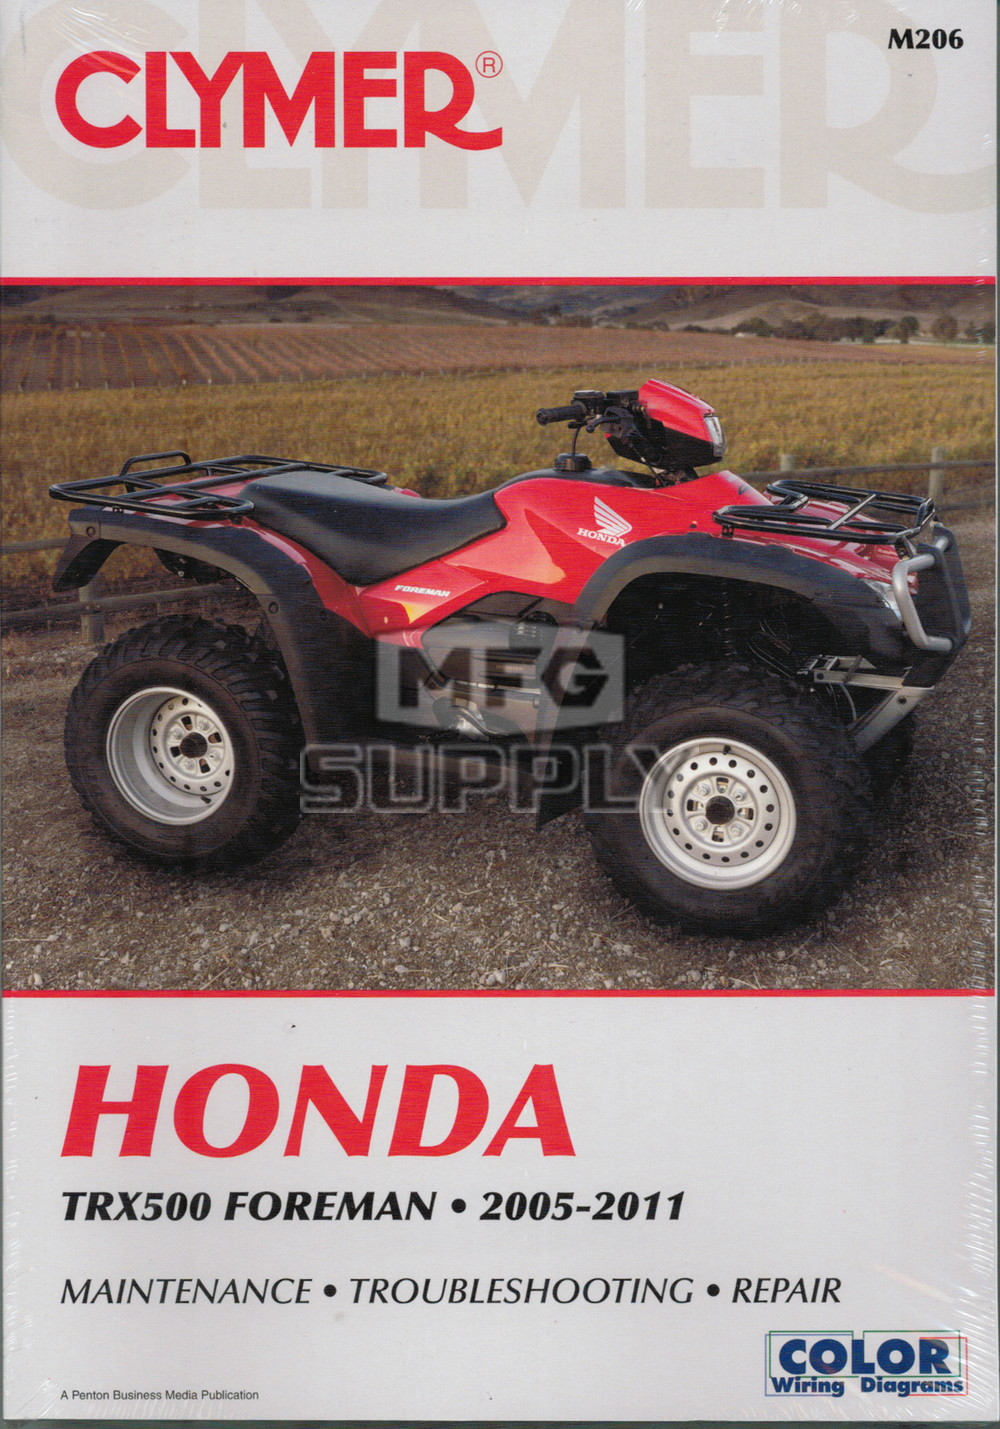 Cm206 05 11 Honda Trx500 Foreman Repair Maintenance Manual Rh Mfgsupply Com  Honda Rancher Parts Diagram